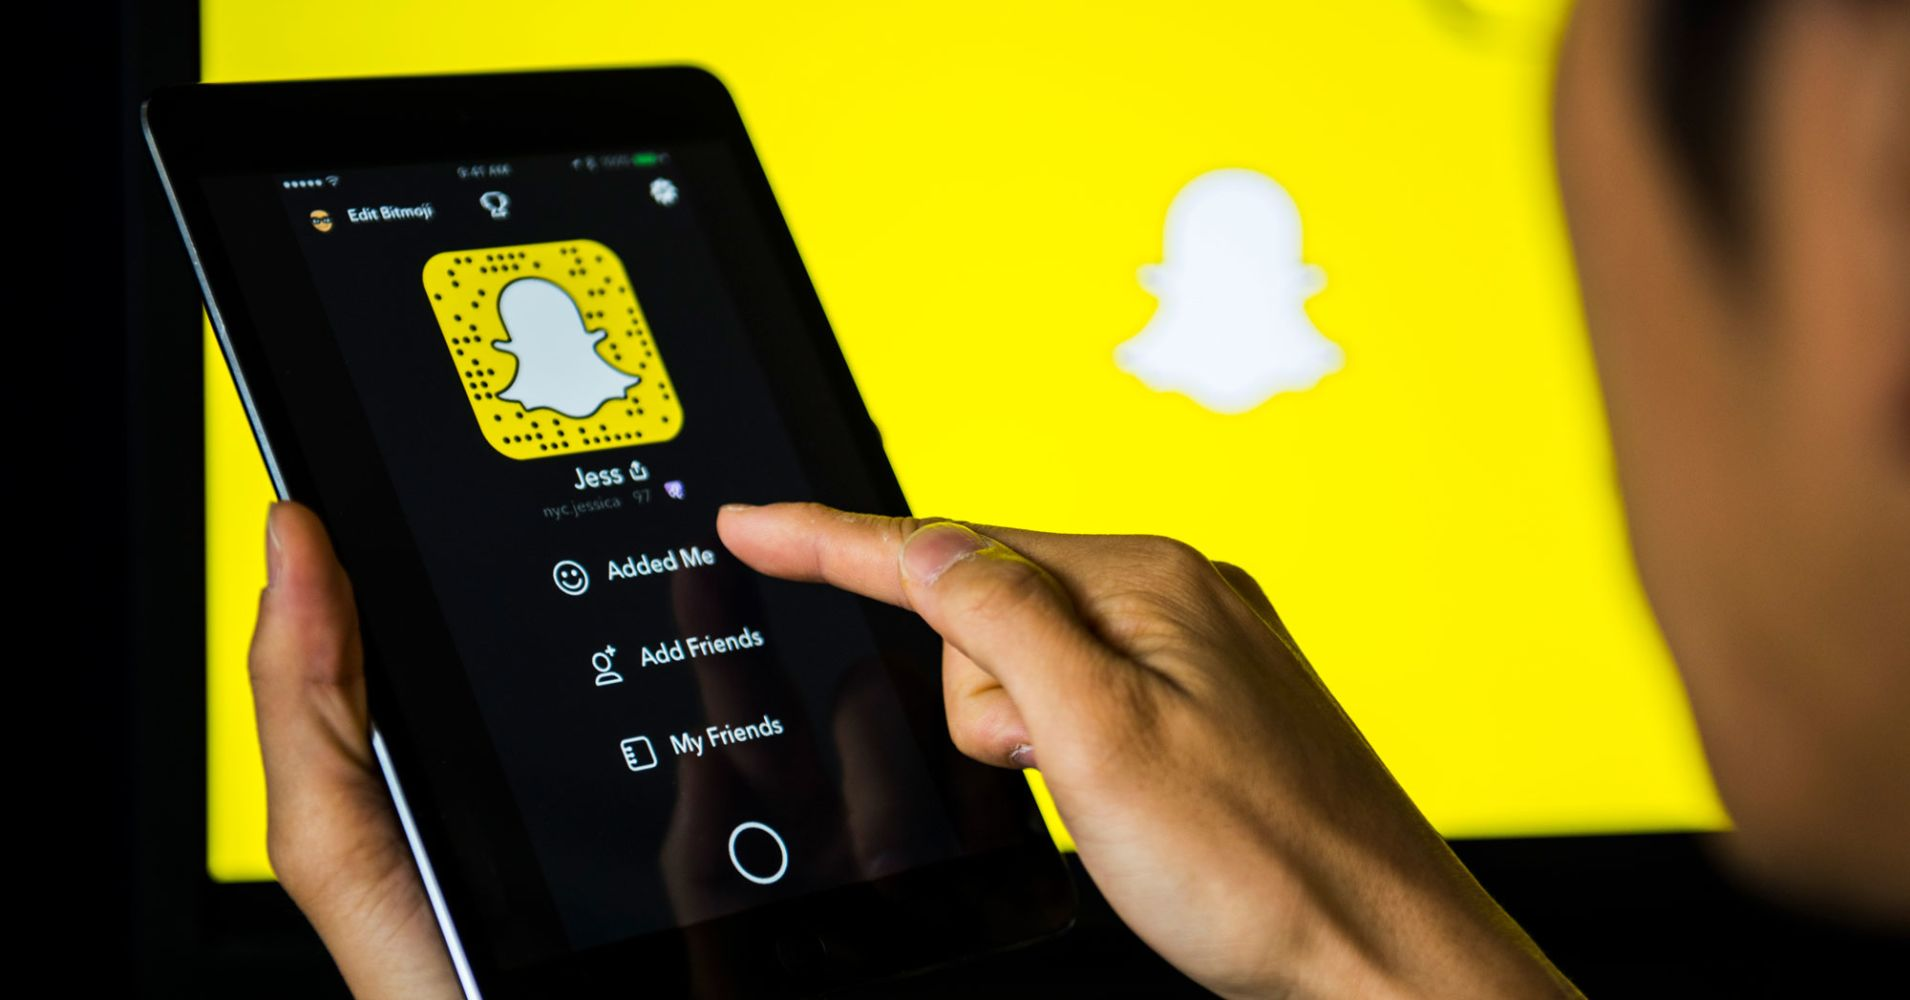 Snapchat employees say they've been spying on users